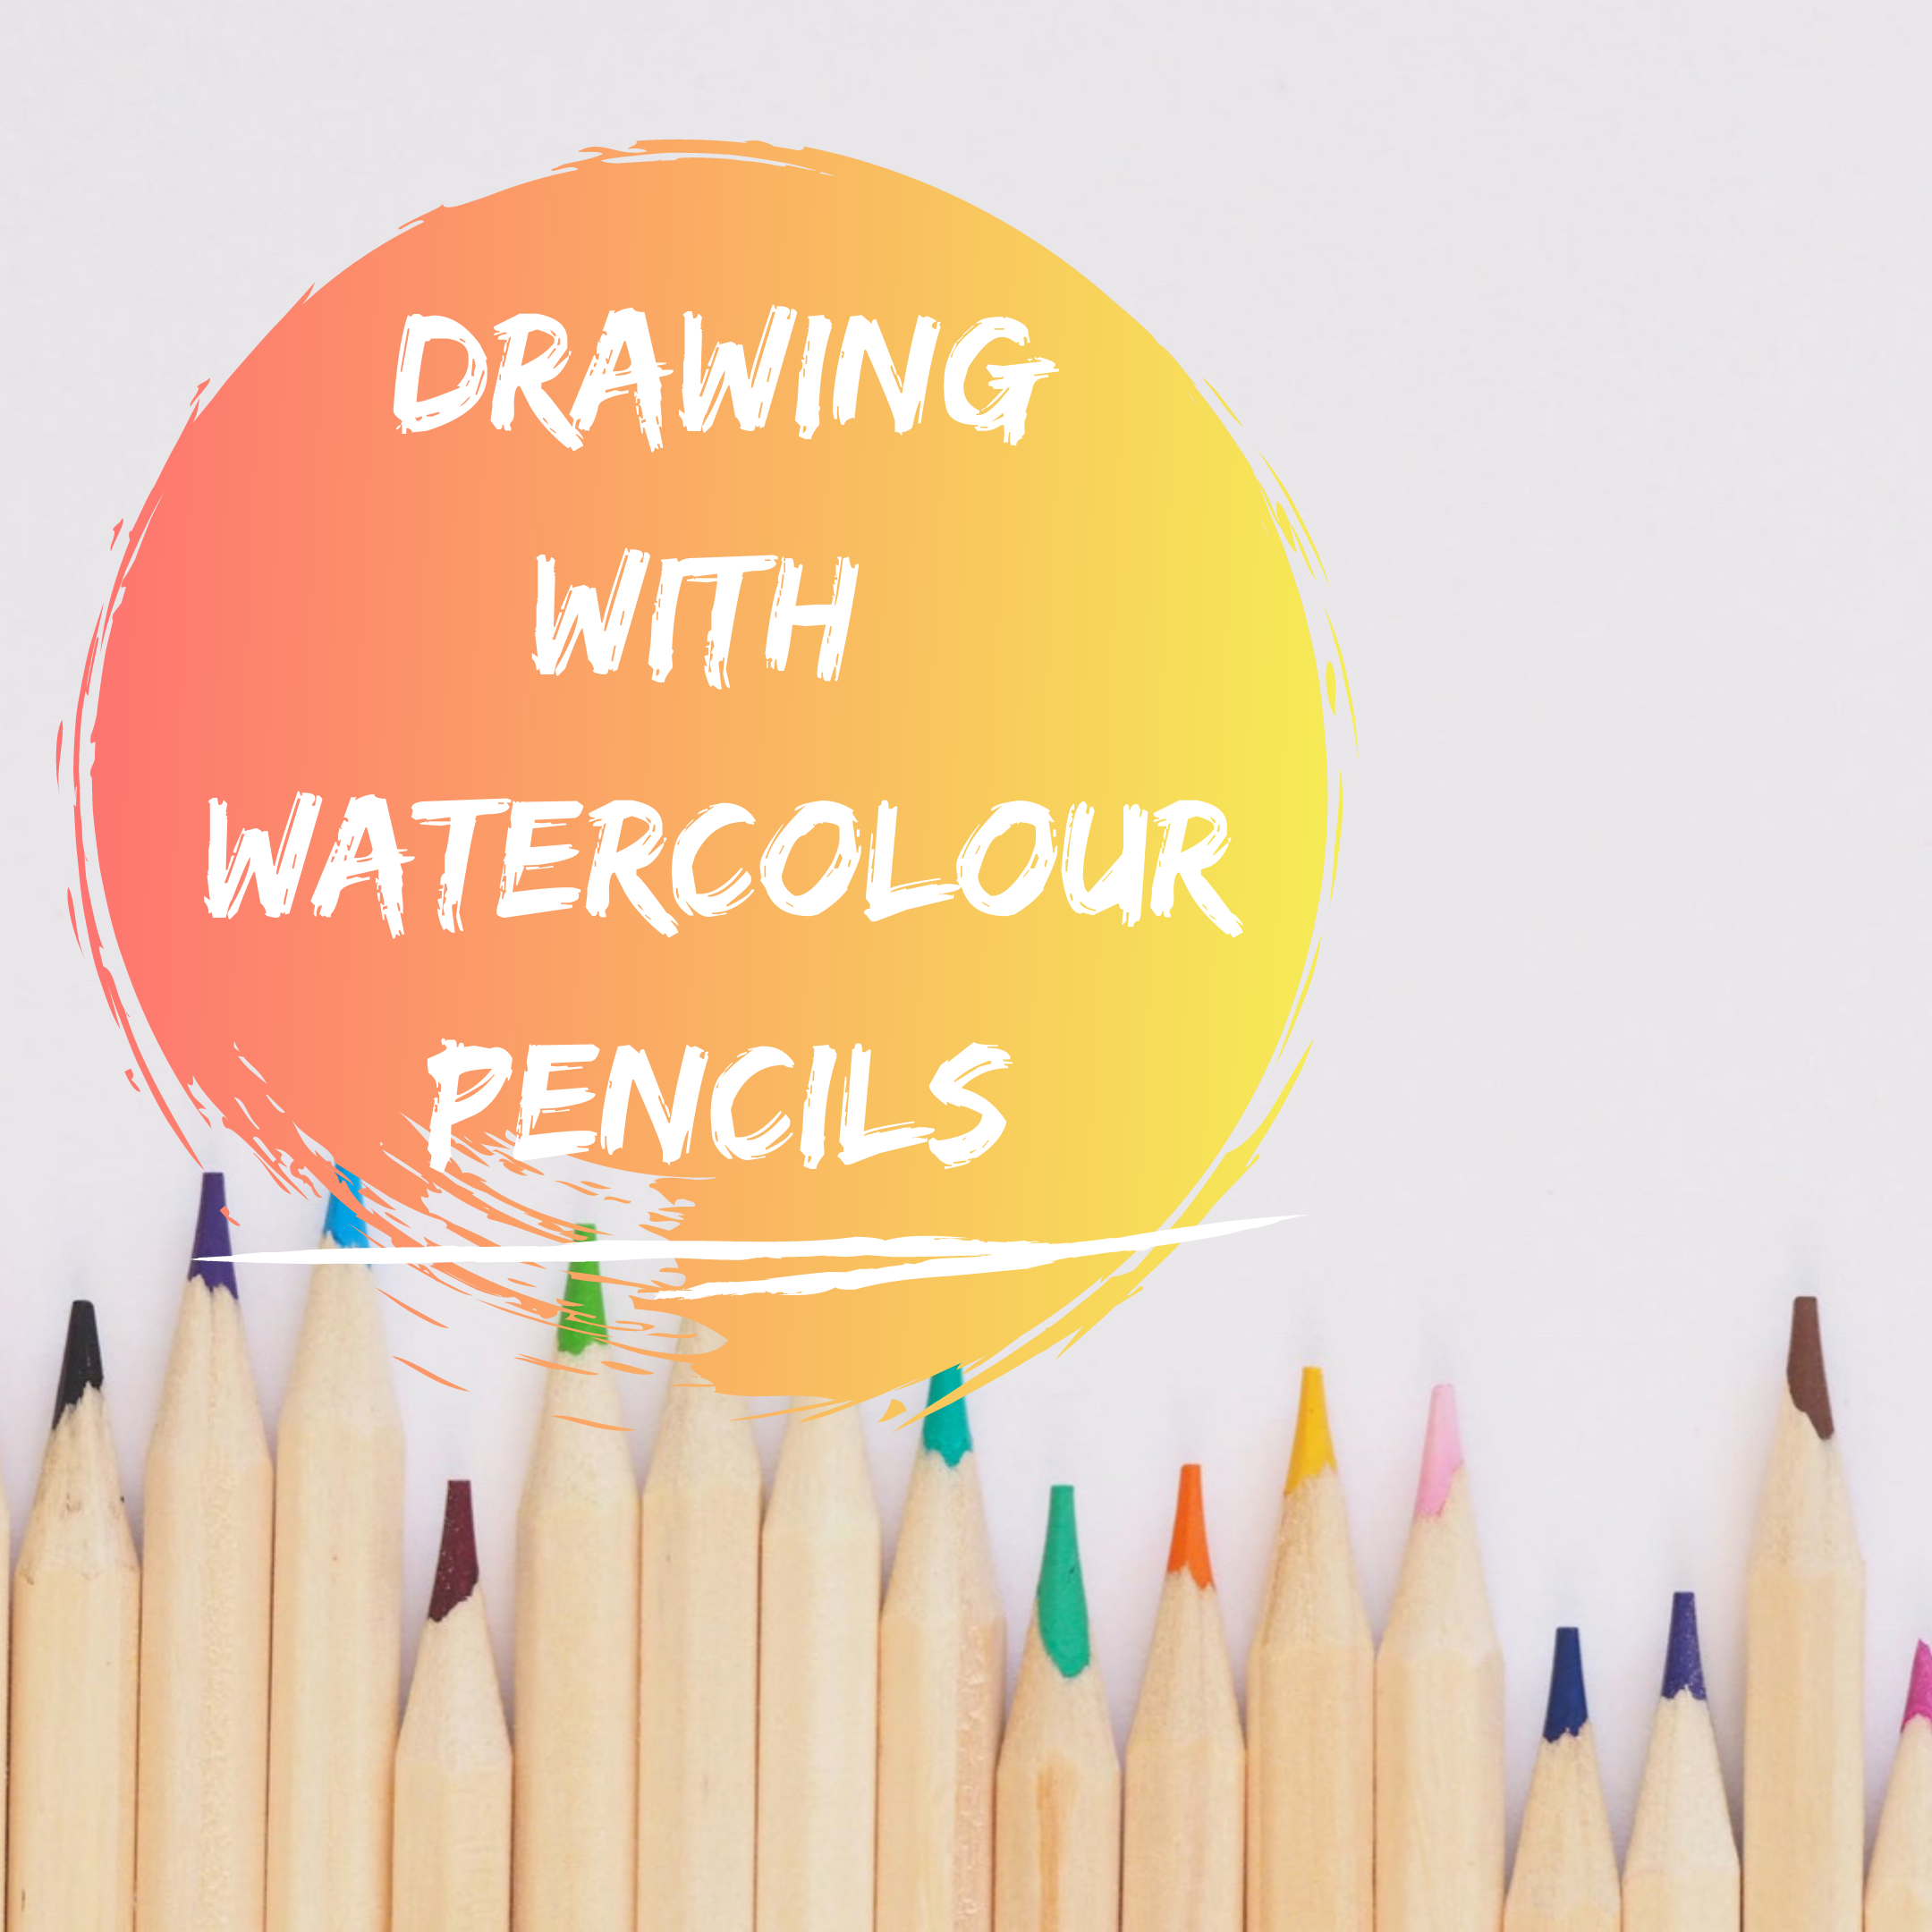 Drawing watercolour pencils course Hertfordshire